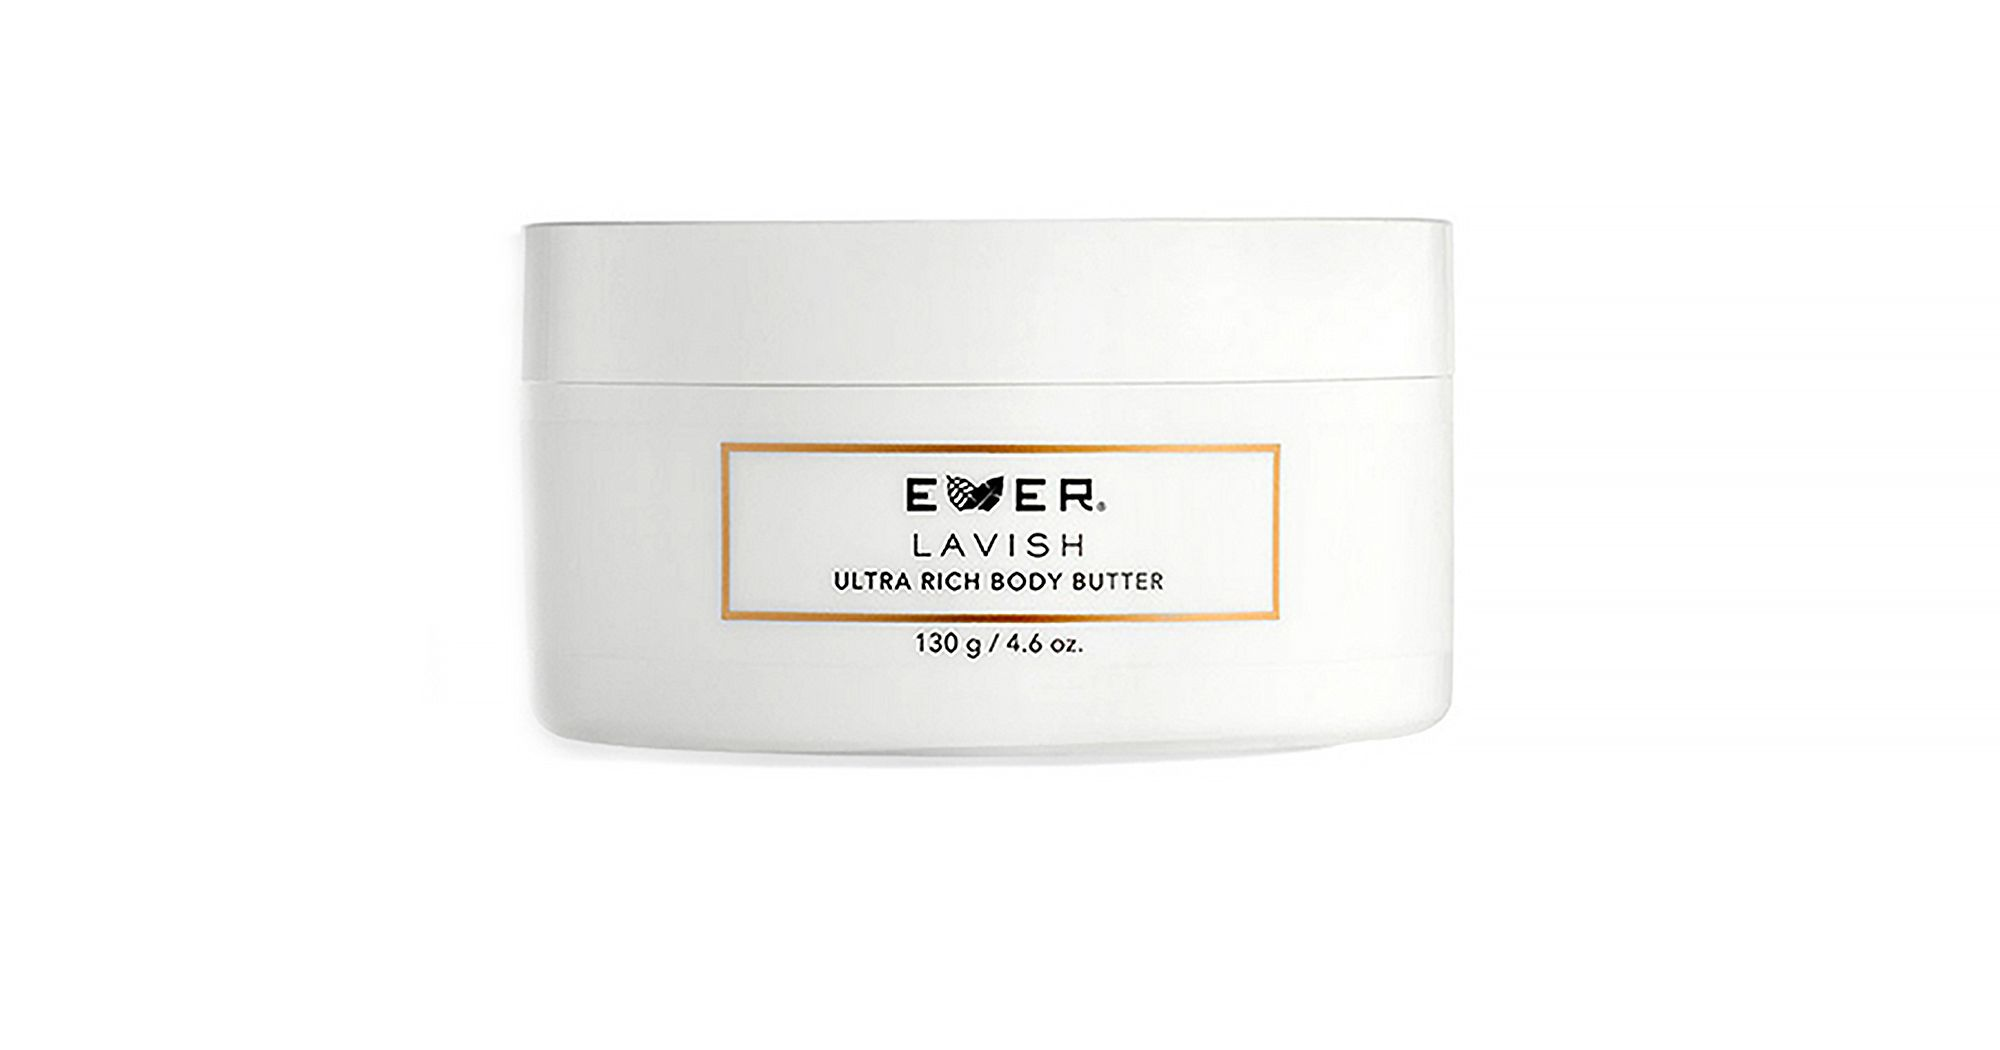 This body butter is LIFE.  I rub it on my tummy every morning!!  It has kept me moisturized and feeling like it just may keep those pesky stretch marks away, or at least not as noticeable in the end.